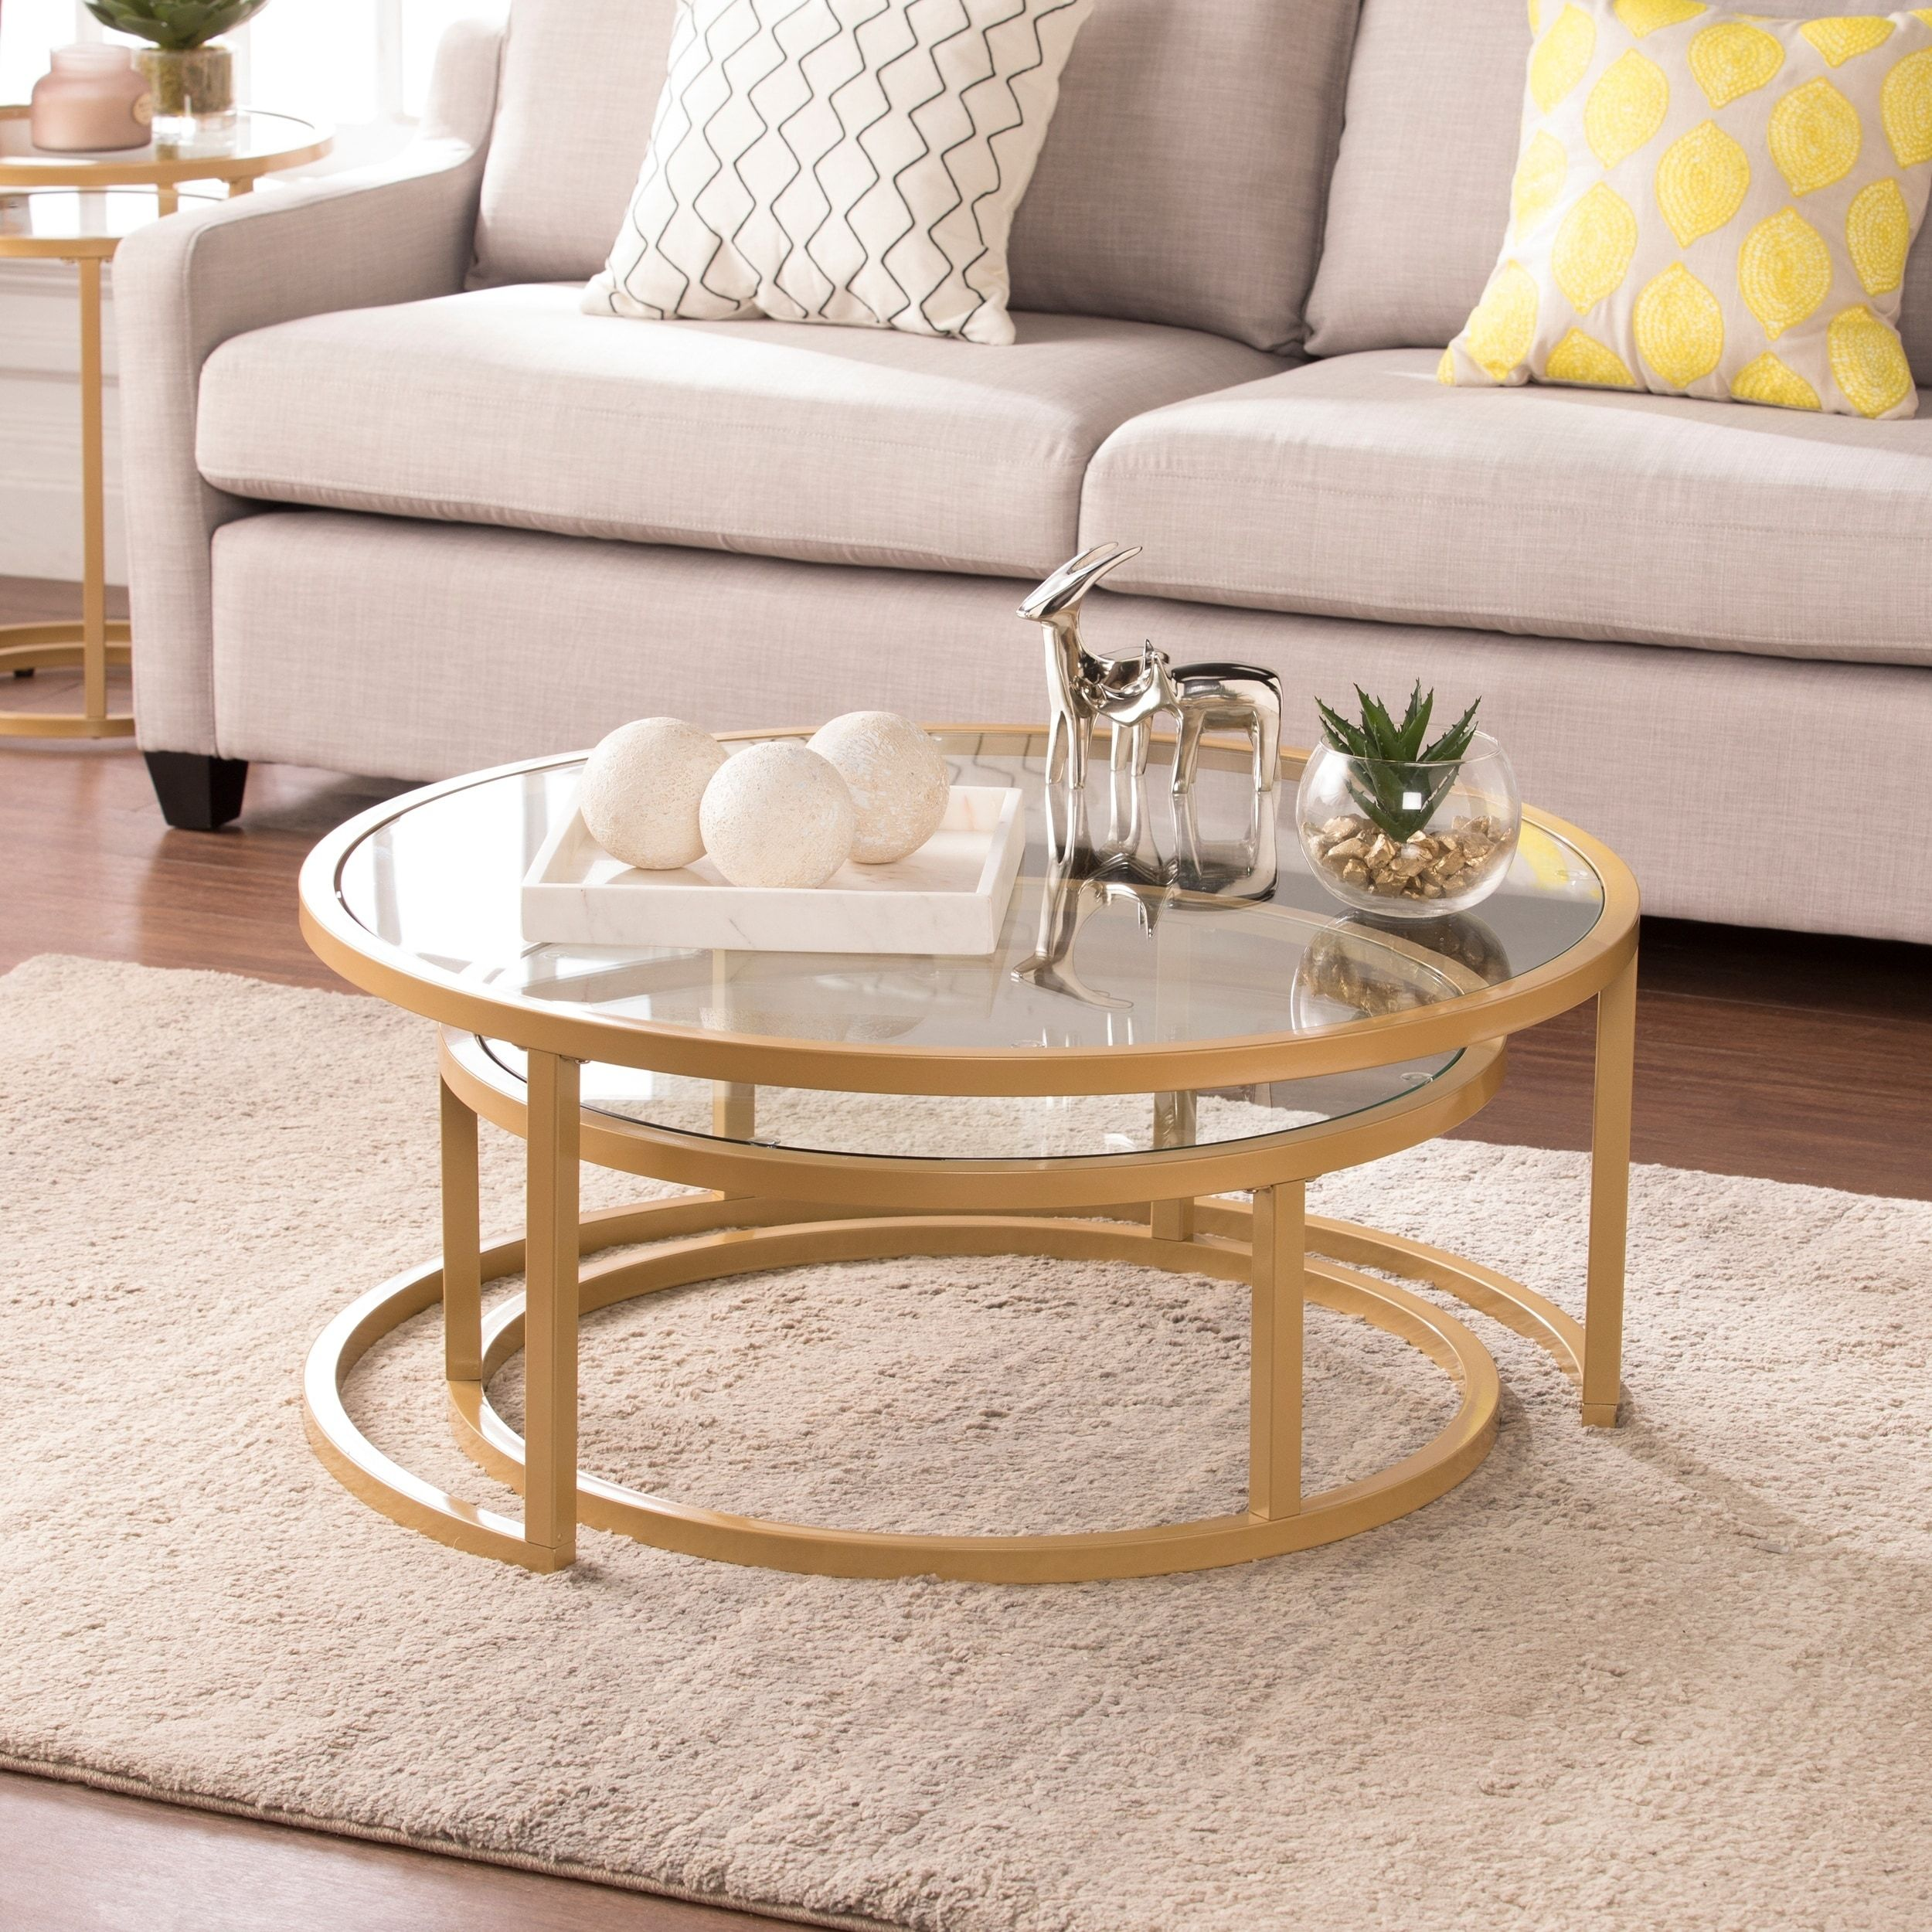 Harper blvd elisha goldtone steel with glass tops glam 2 piece nesting cocktail table set overstock com shopping the best deals on coffee sofa end